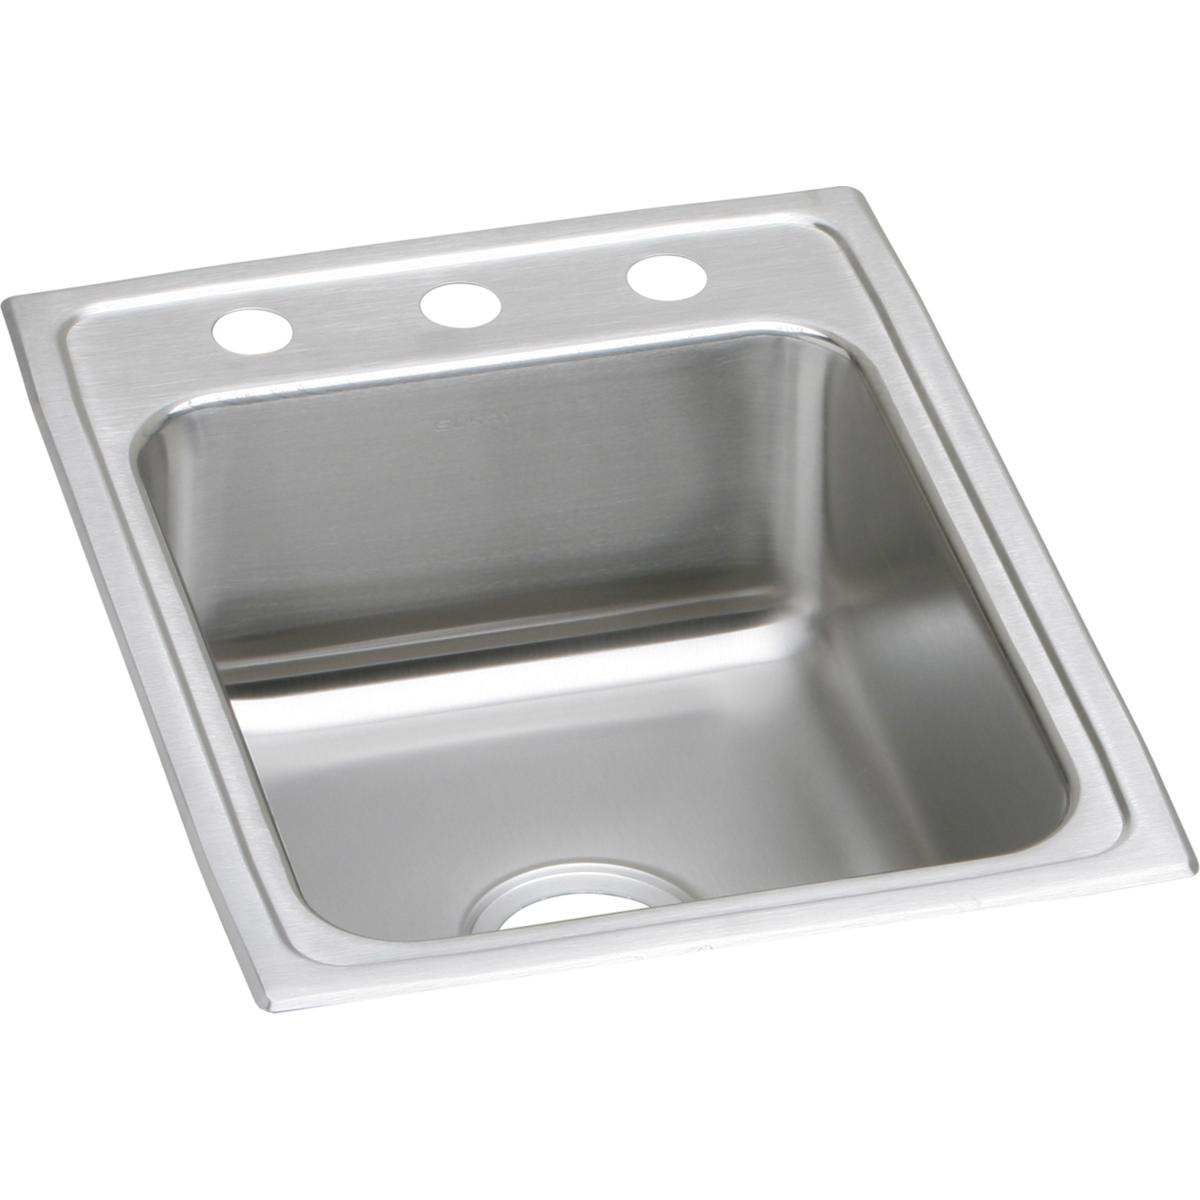 "Elkay Lustertone Classic Stainless Steel 17"" x 22"" x 5-1/2"", Single Bowl Drop-in ADA Sink"